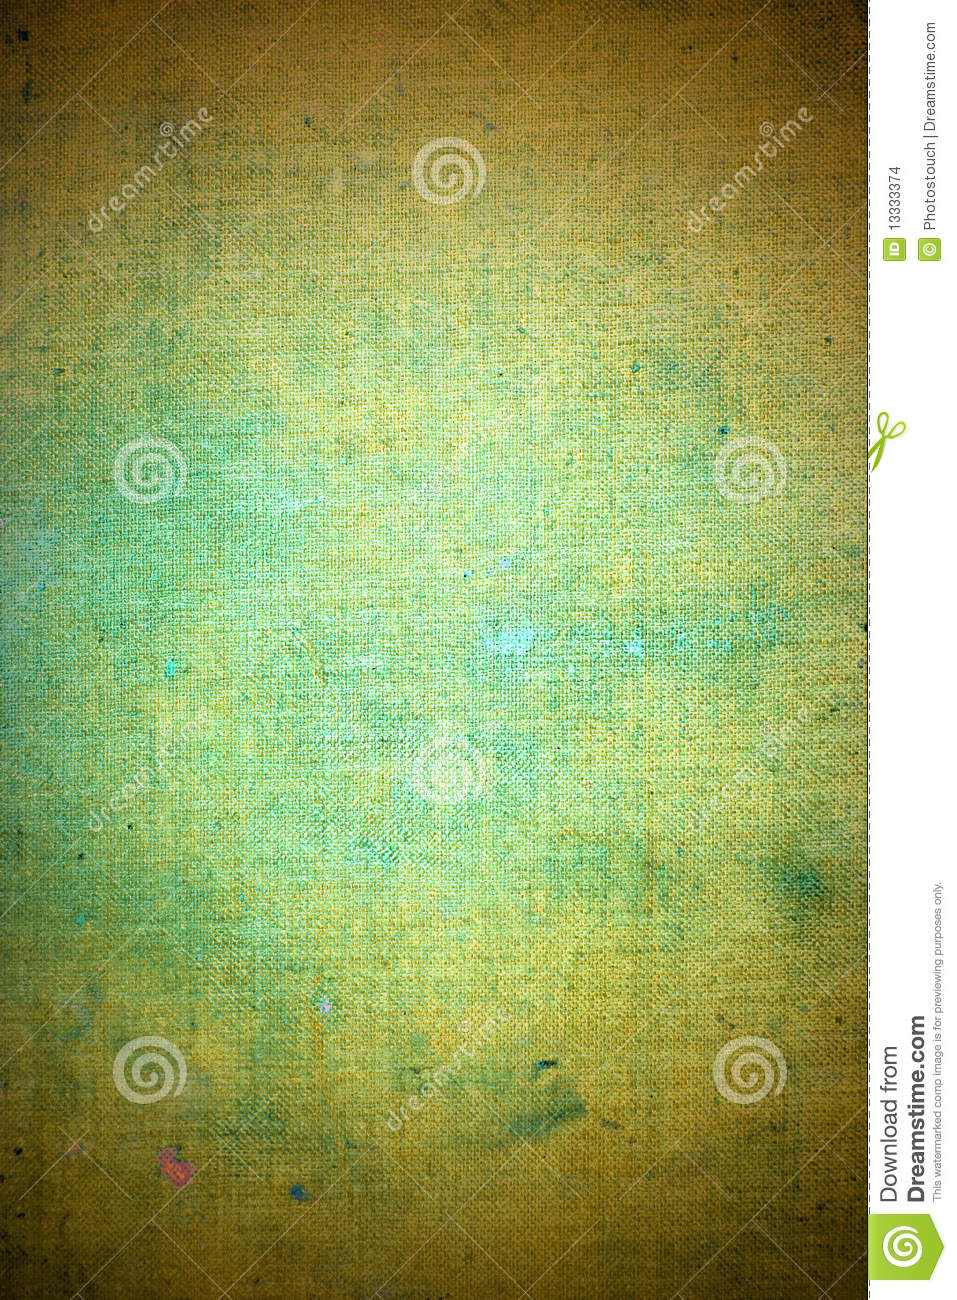 Old Book Cover Background : Grunge background old book cover stock images image